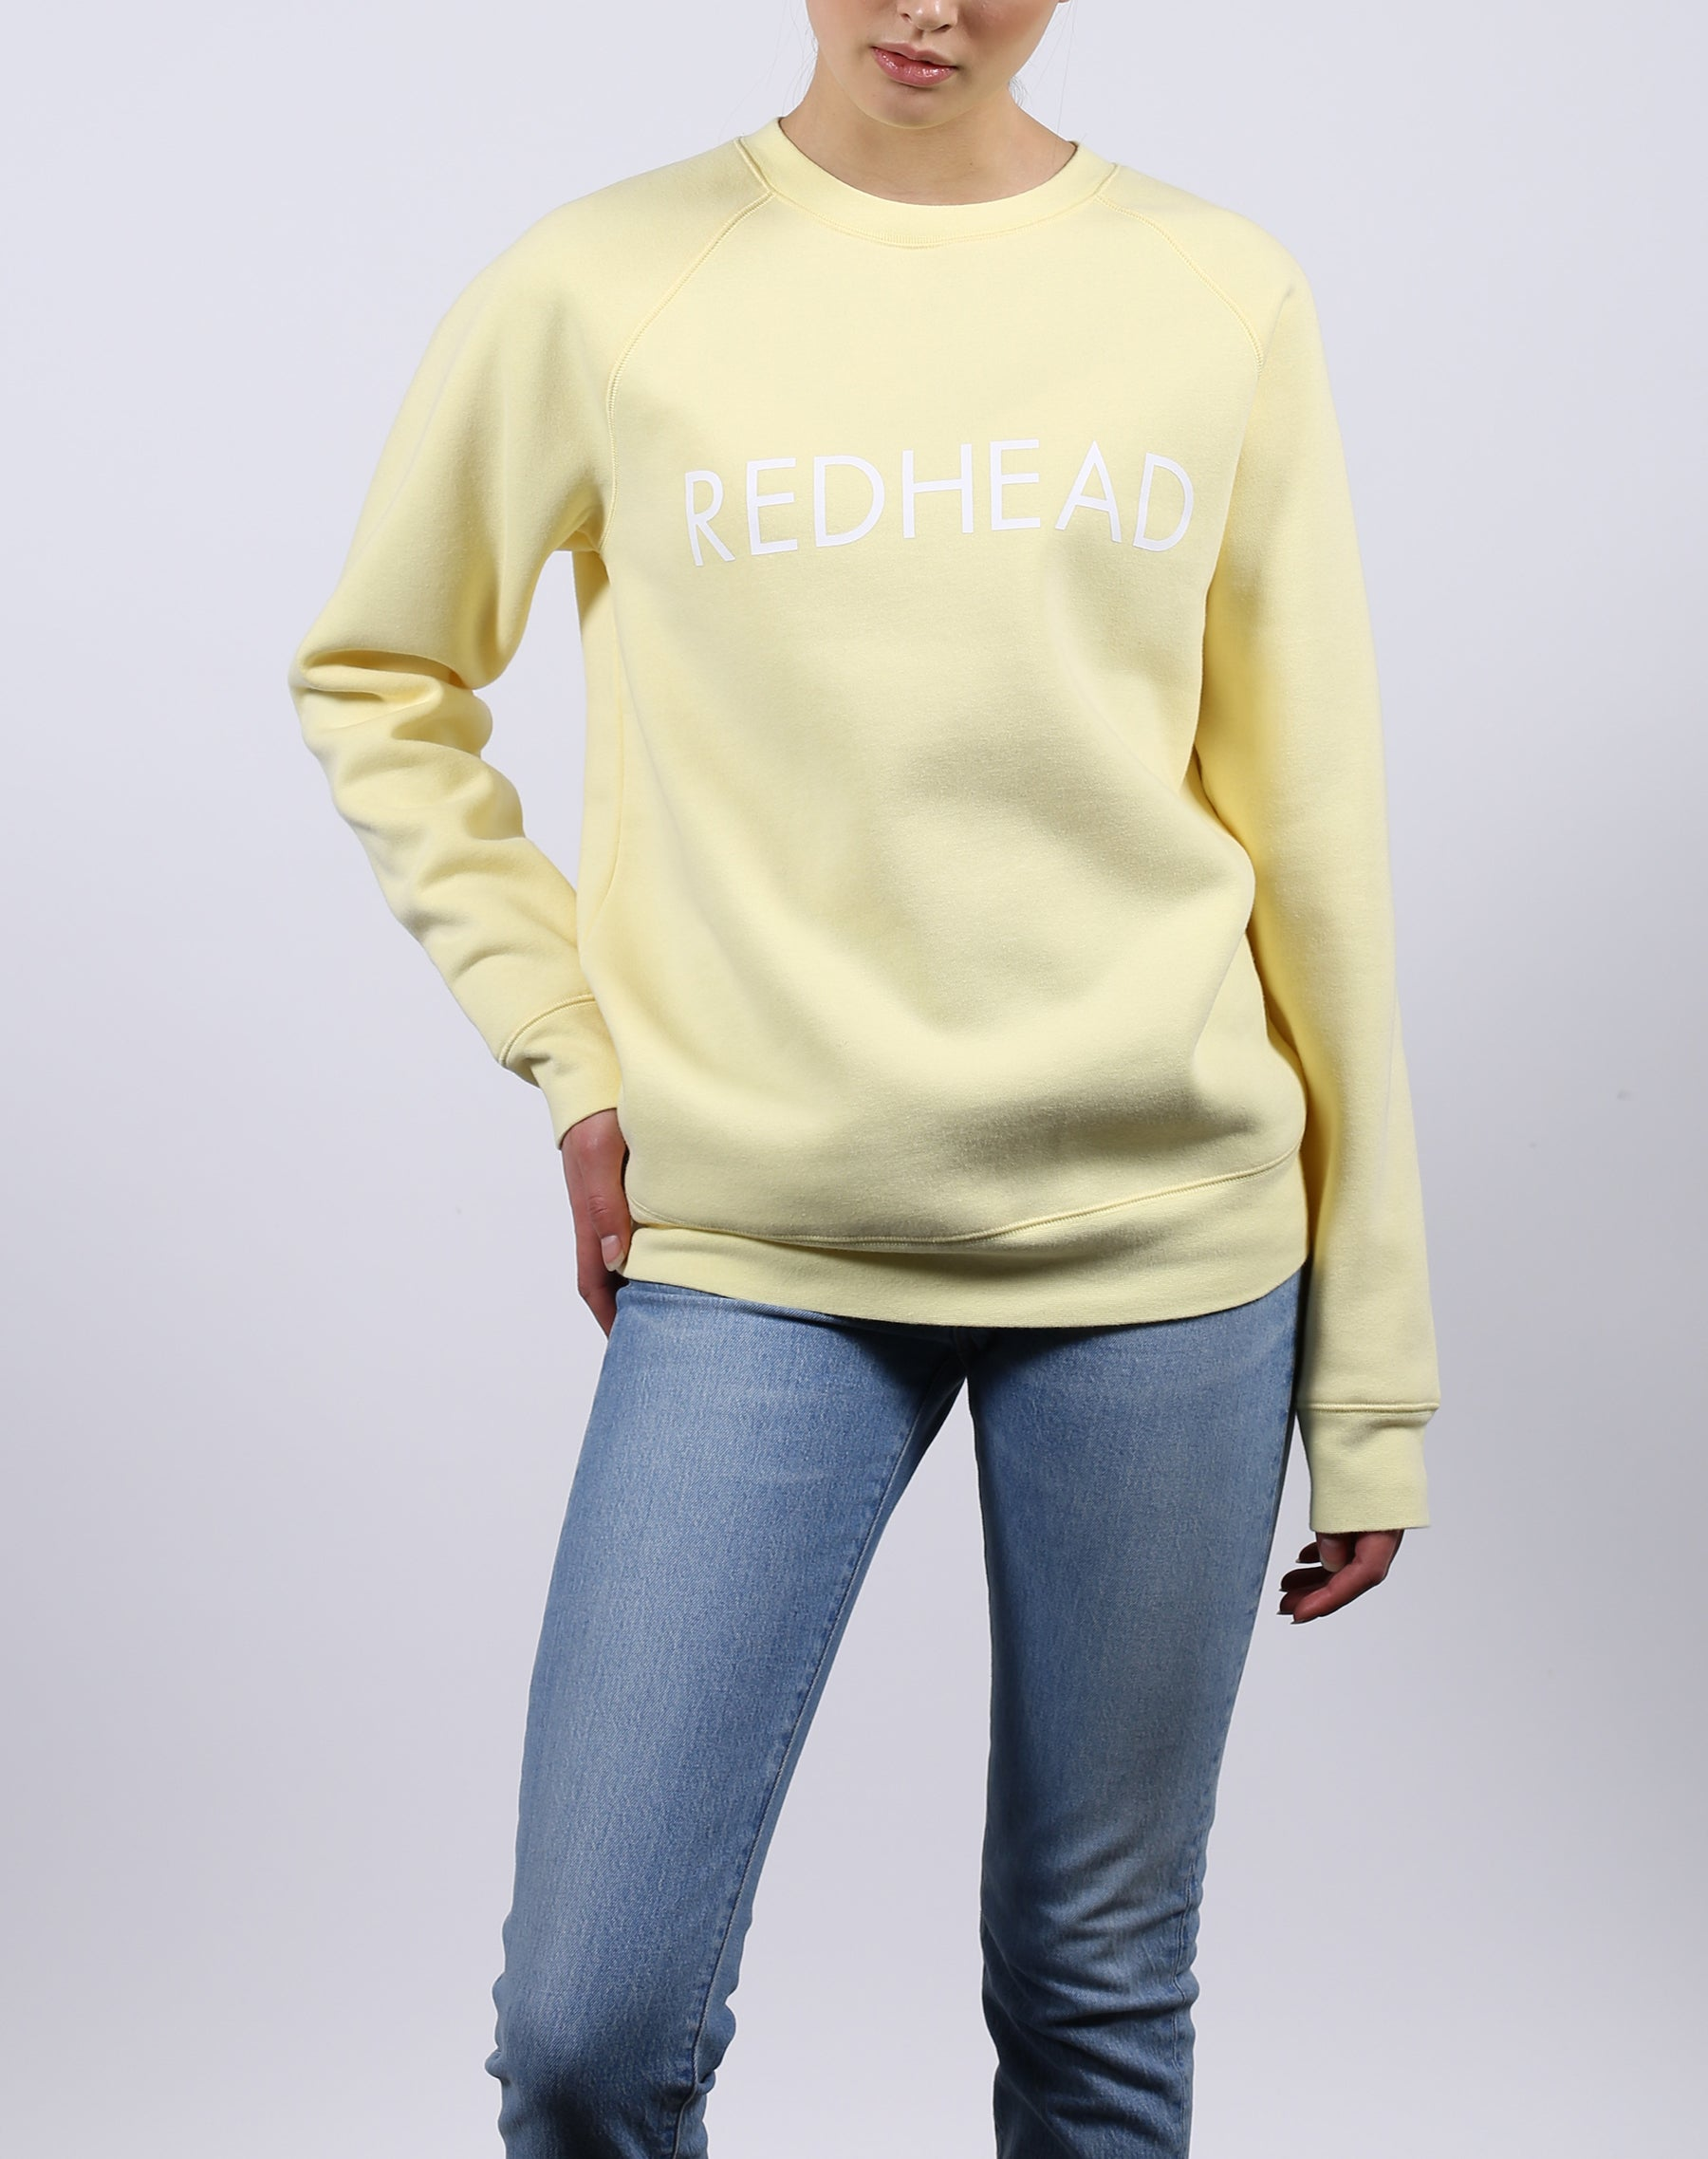 This is a Ecommerce photo of the Redhead Lemon Classic Crew neck Sweatshirt by Brunette the Label